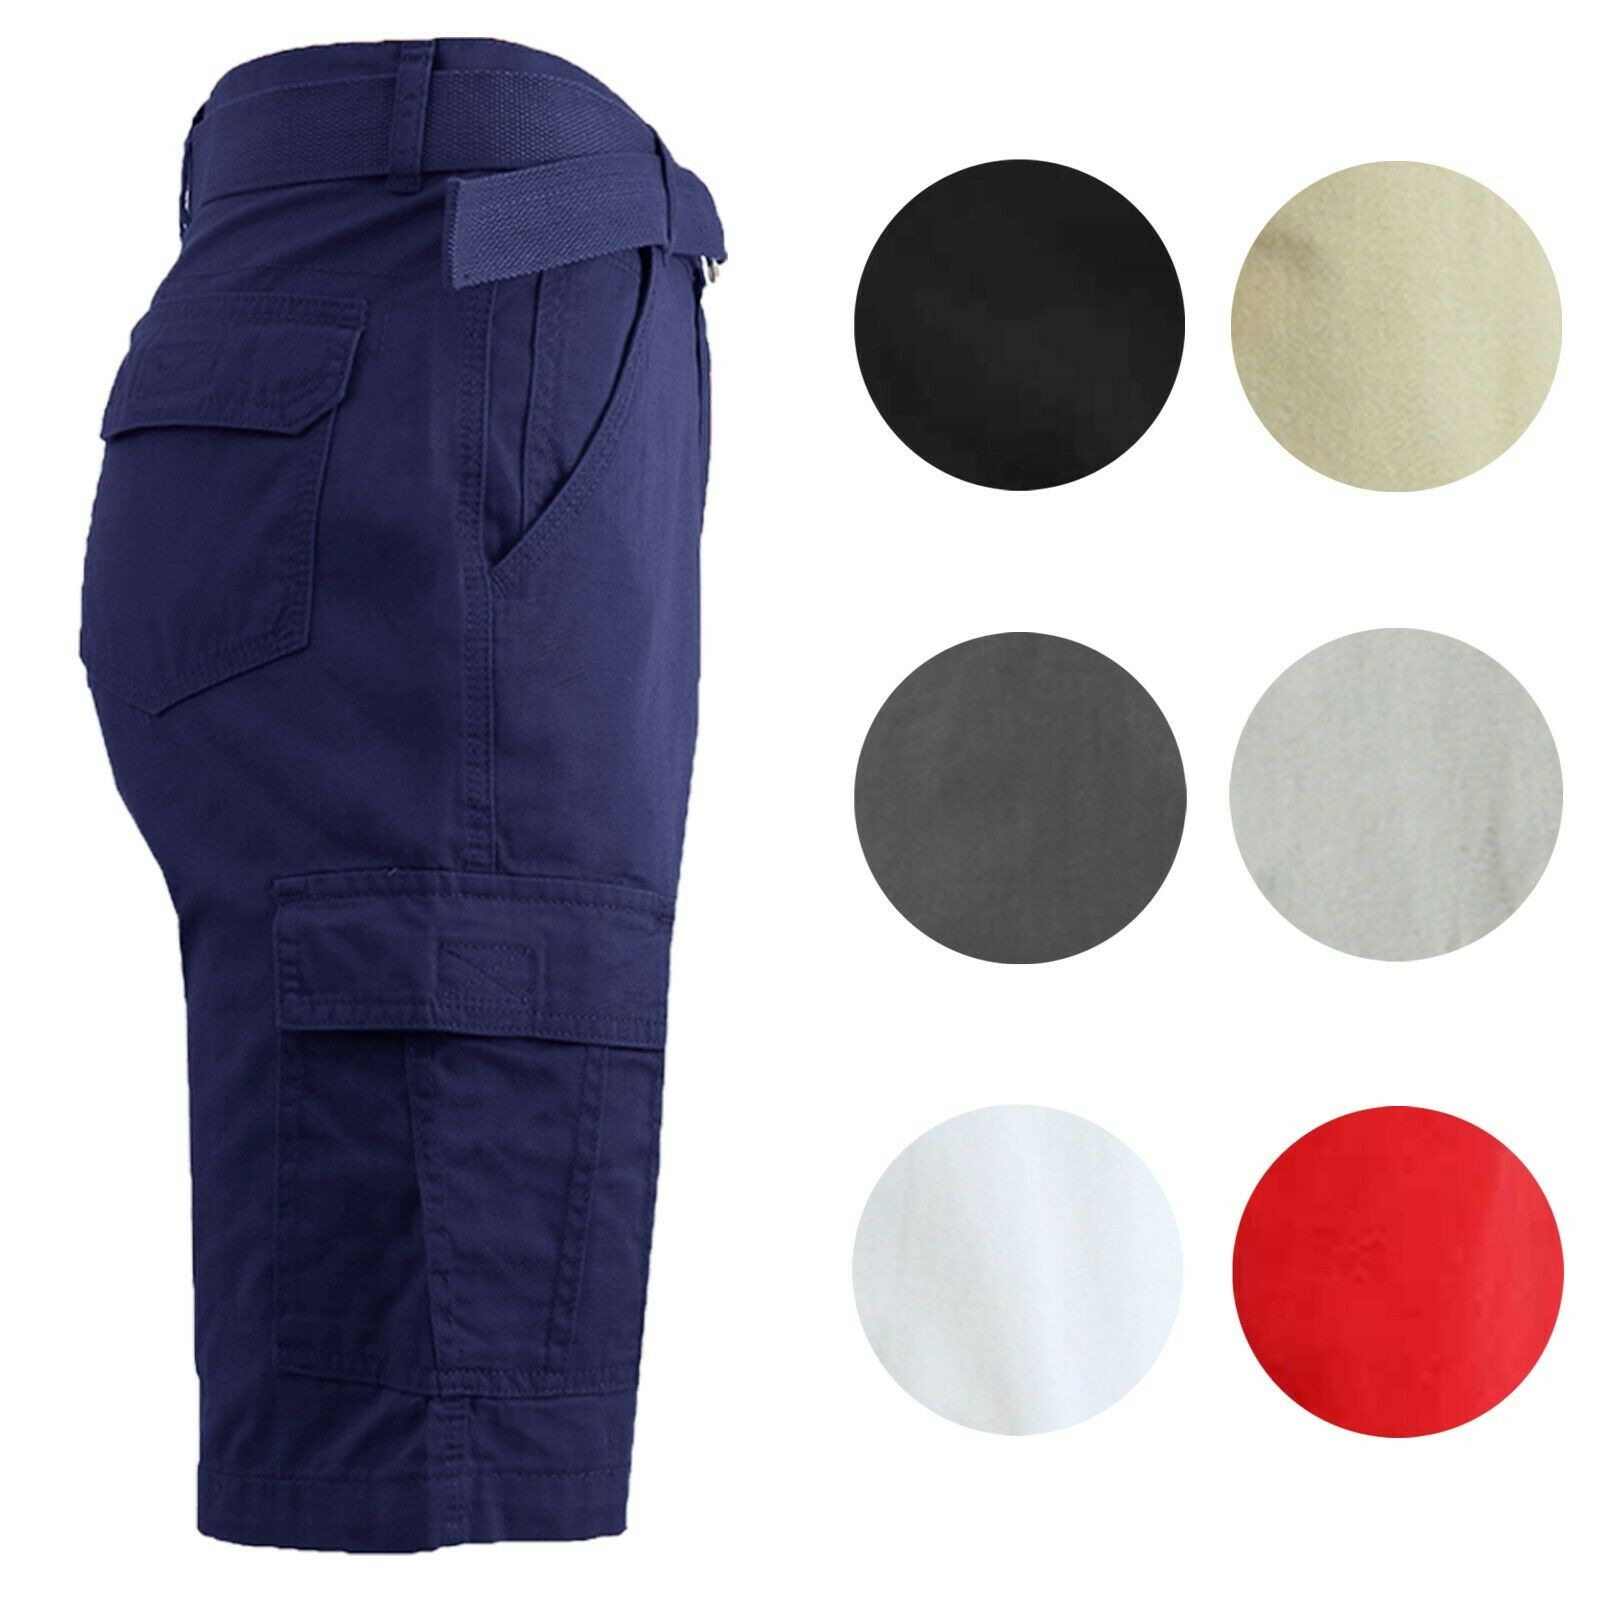 Mens Cargo Shorts Cotton Flat Front Belted Lounge Colors Pockets NEW 30-42 Clothing, Shoes & Accessories